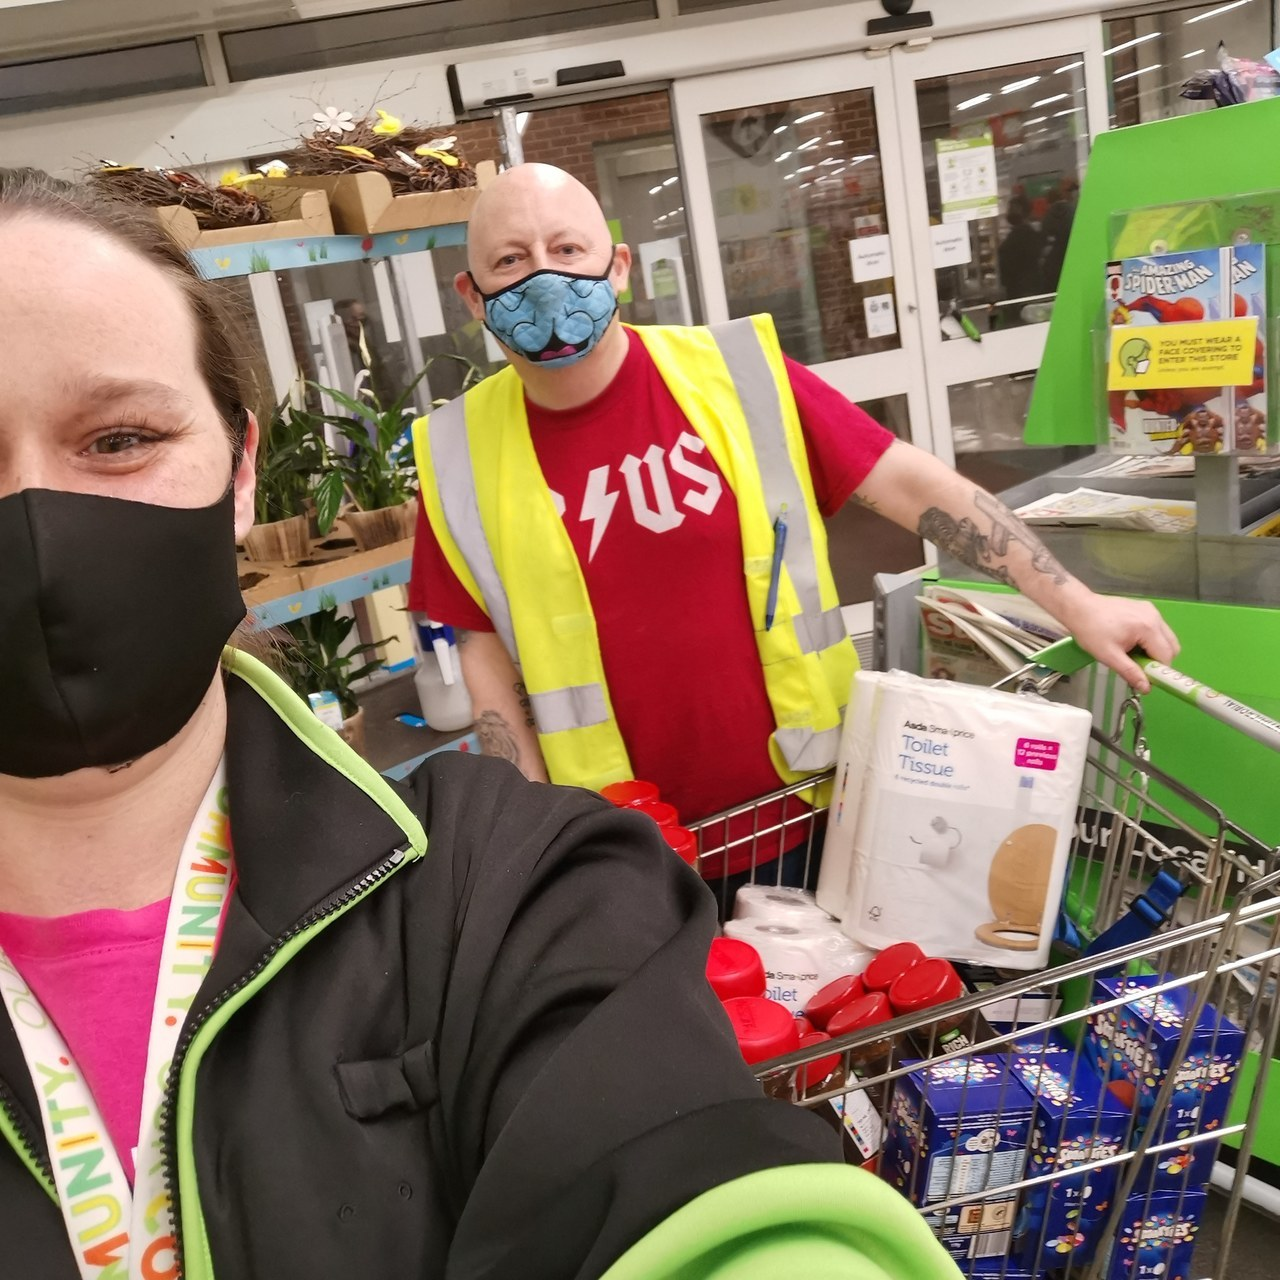 A donation of Easter eggs and essential items to the message community grocery | Asda Wythenshawe